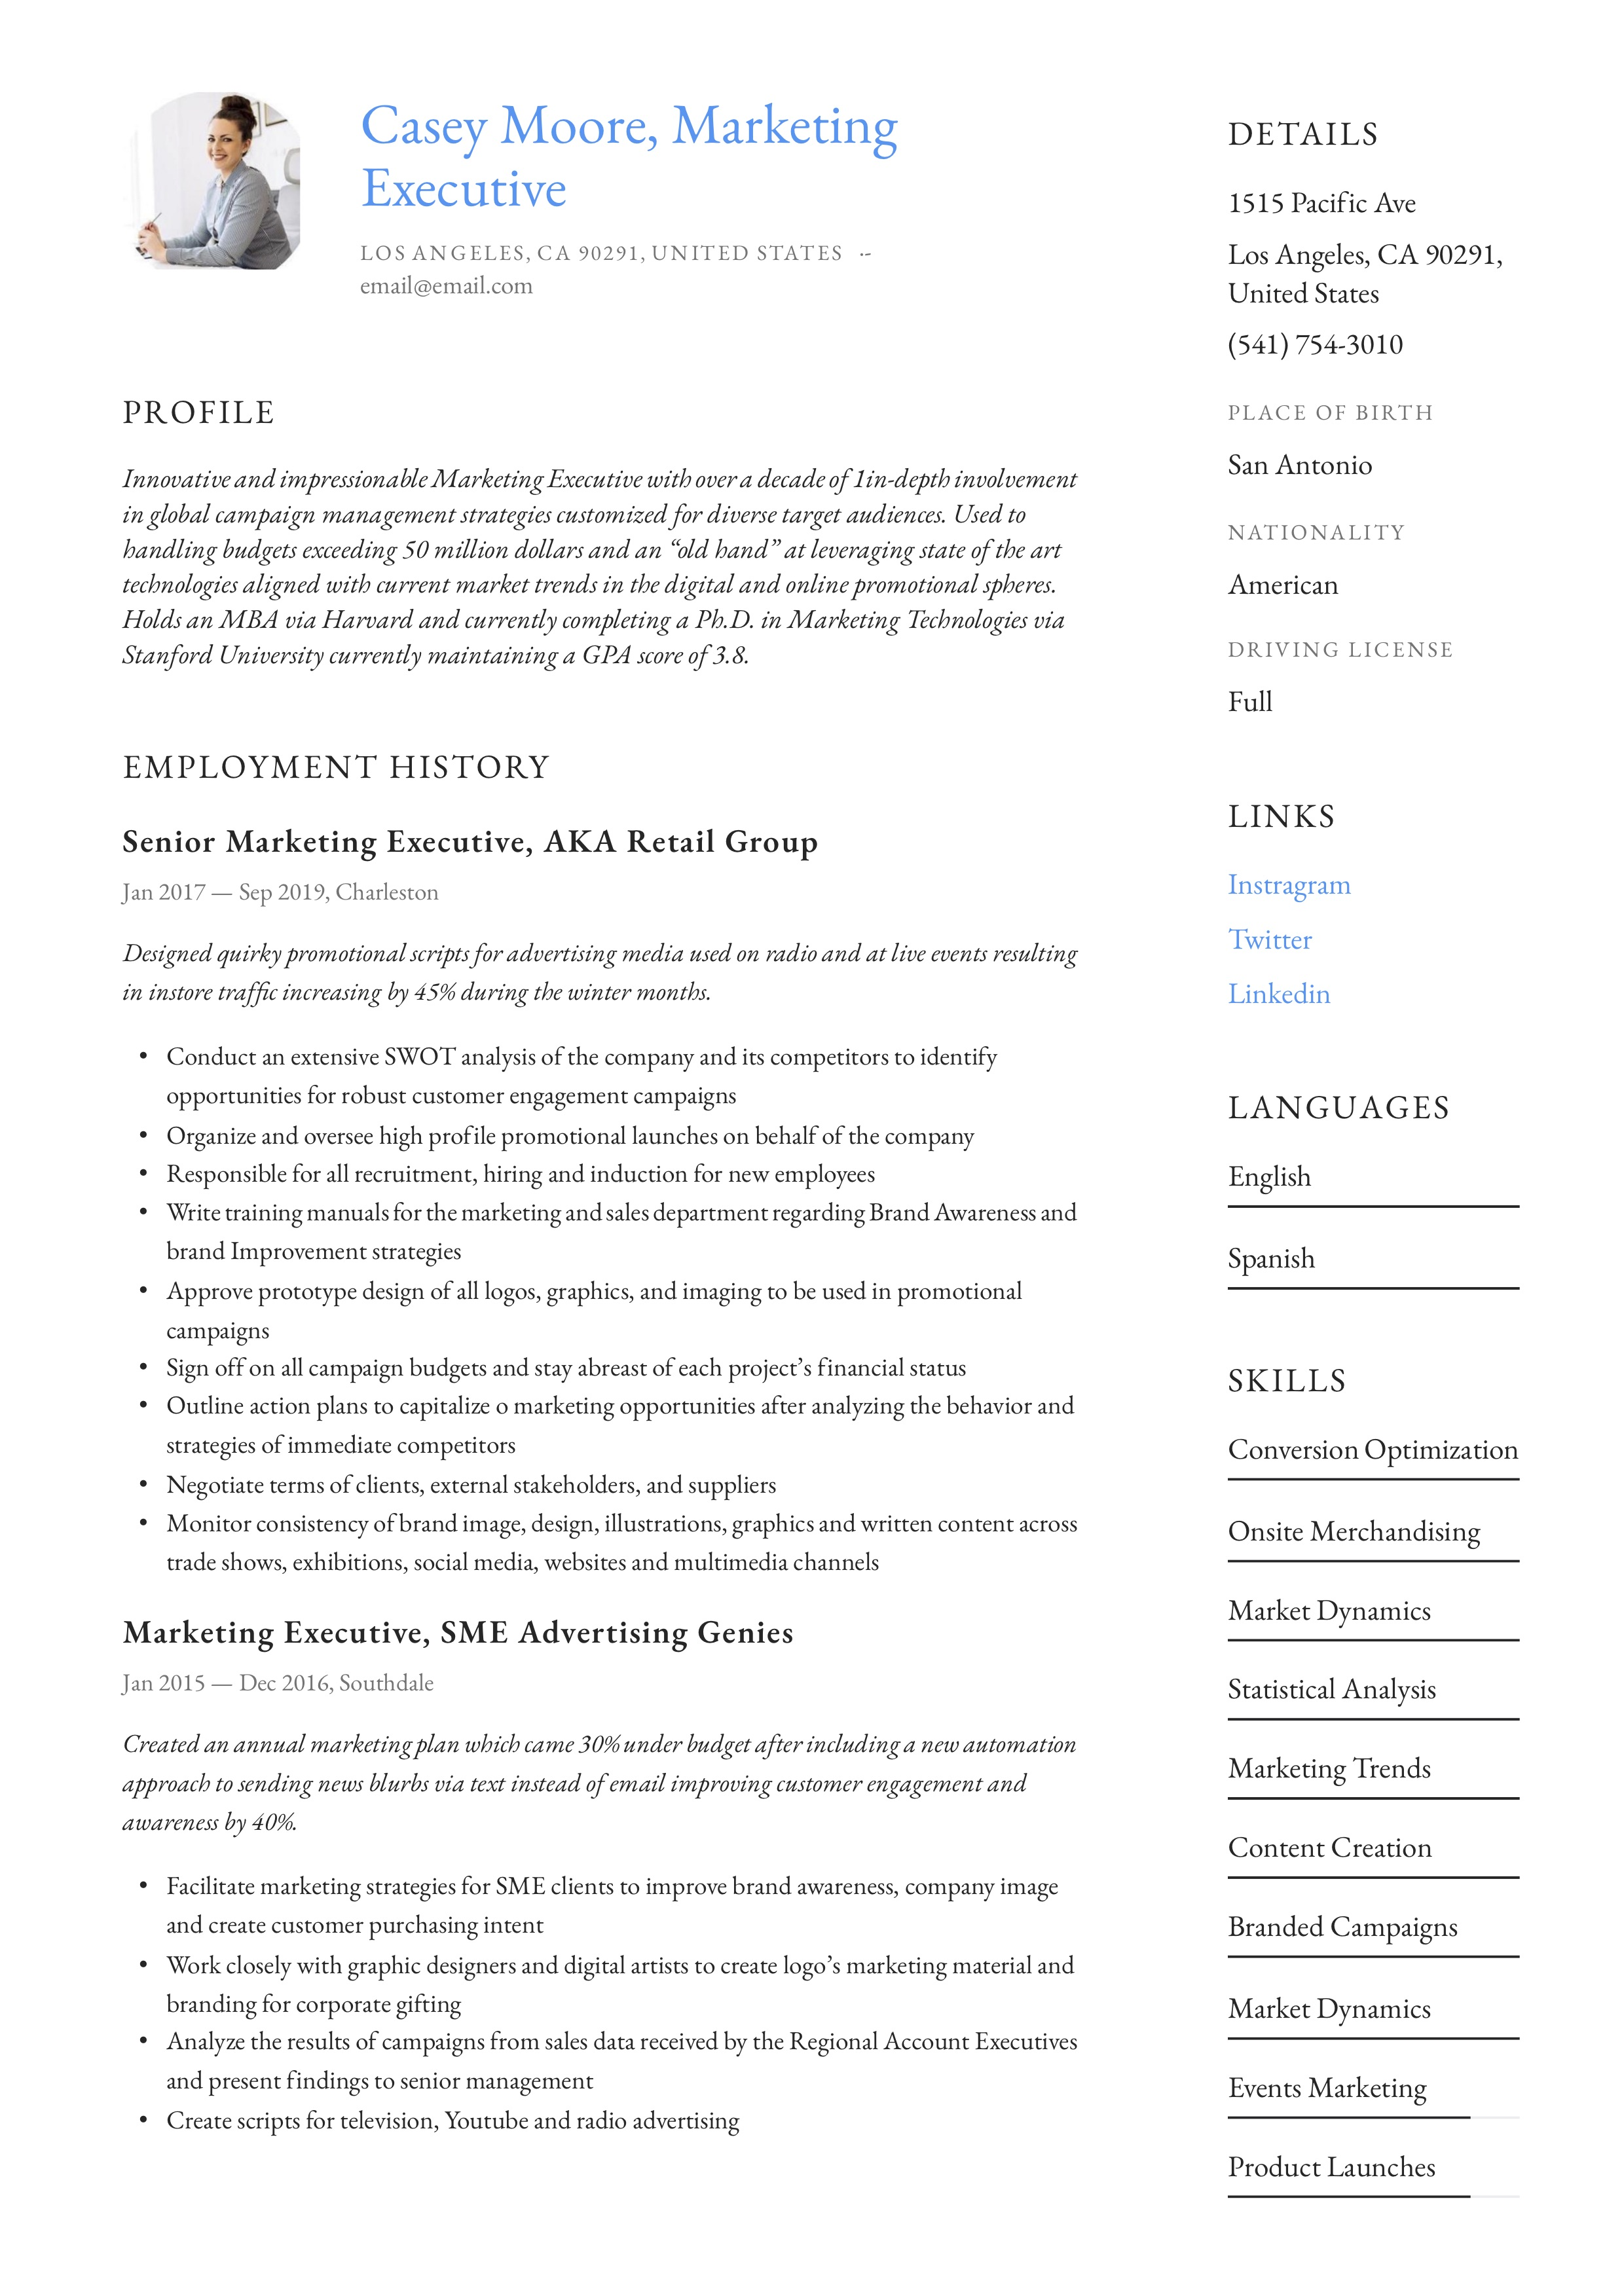 Marketing Executive Resume Writing Guide 12 Examples 2020